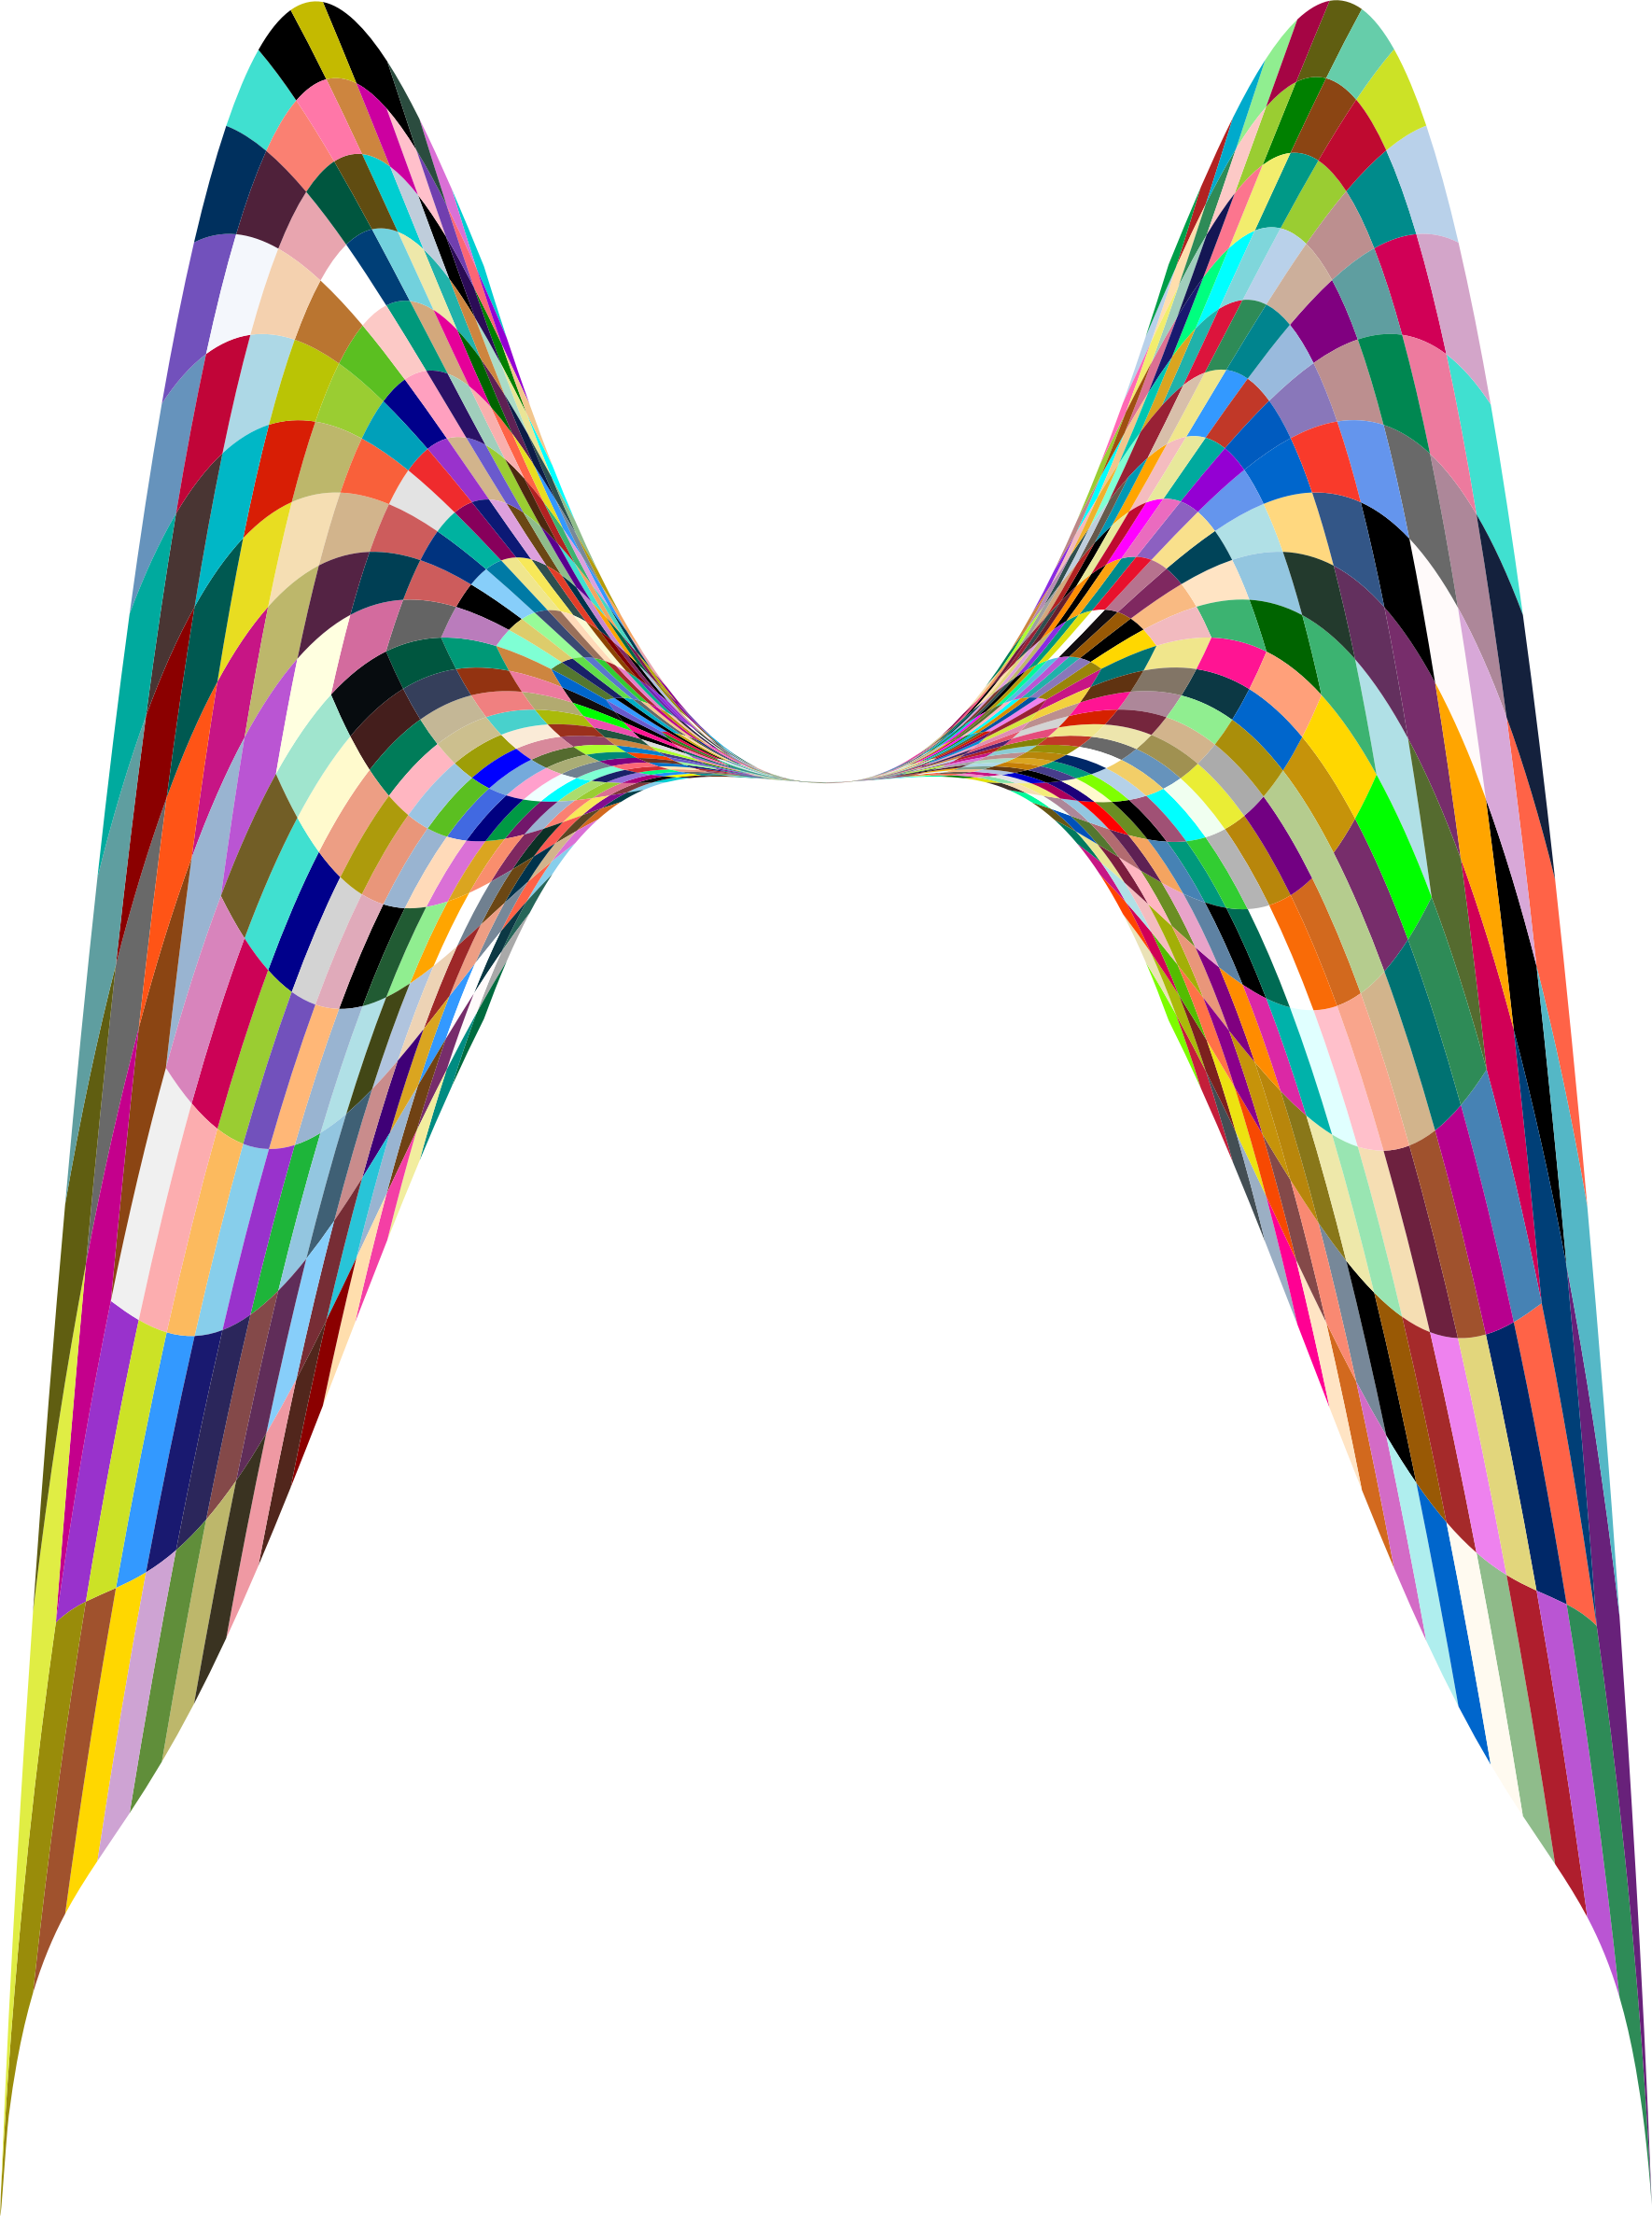 Colorful geometric icons free. Png angel wings clip transparent download